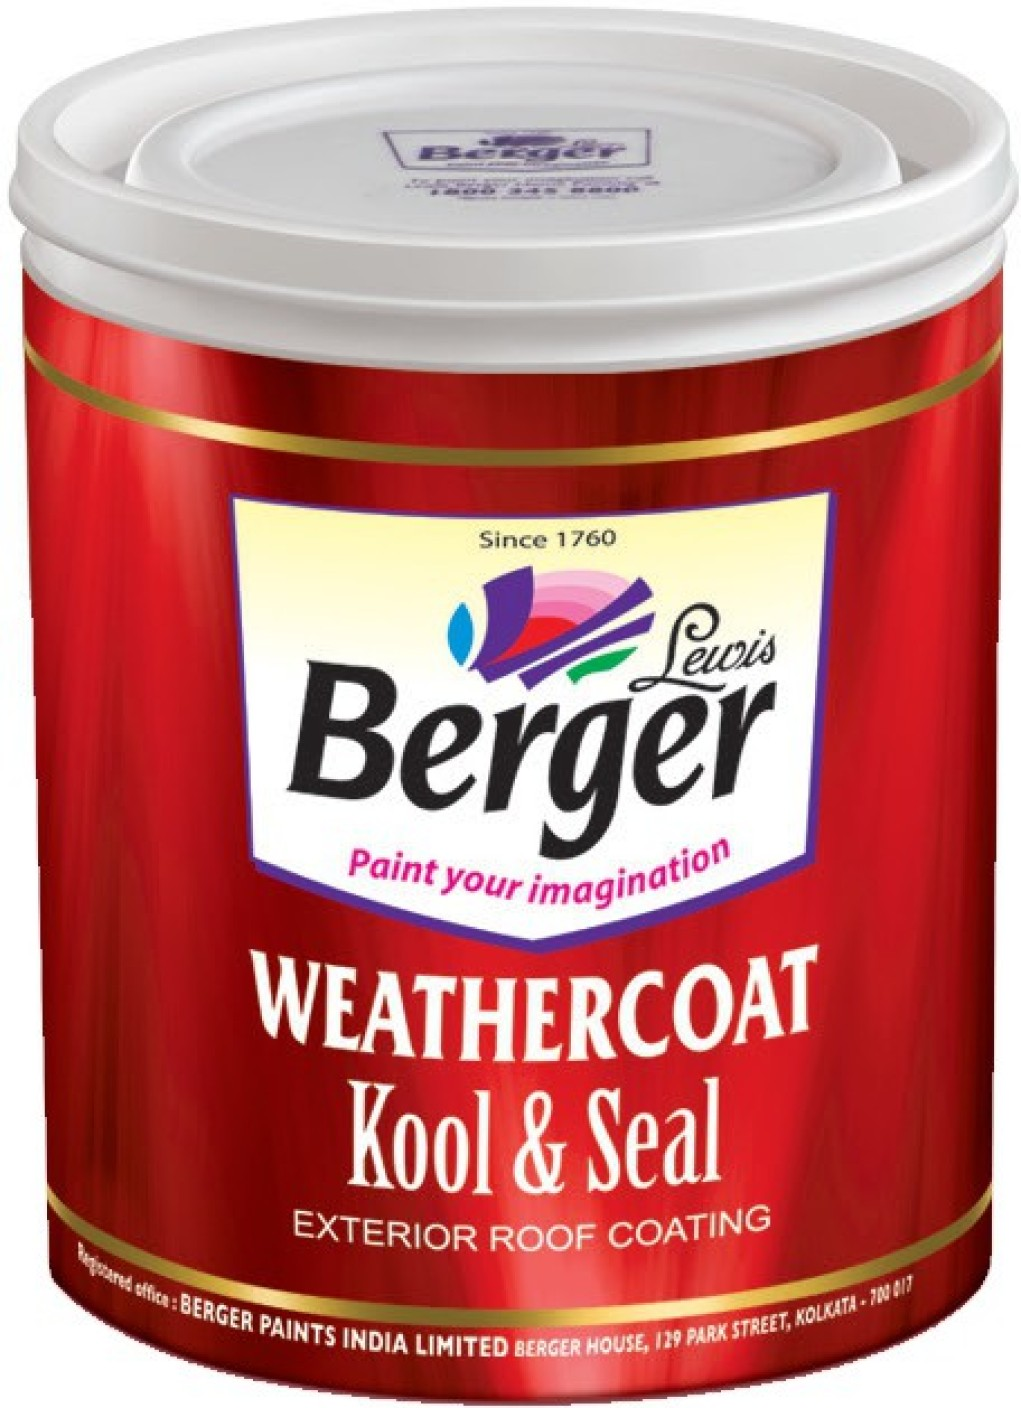 Berger Weathercoat Kool And Seal White Emulsion Wall Paint